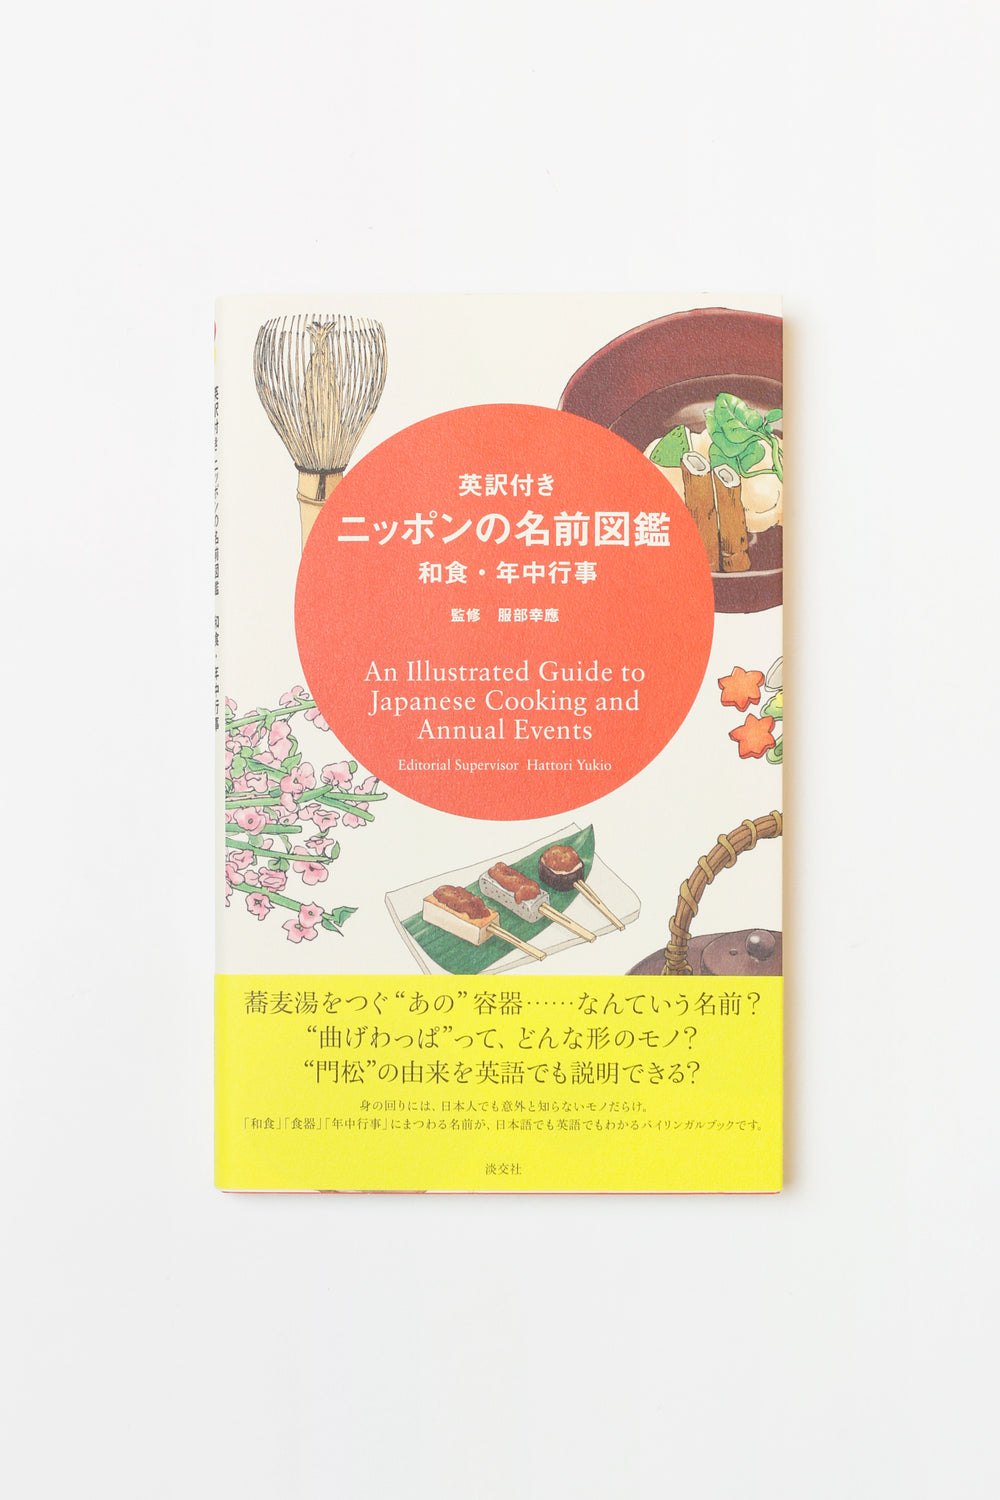 Illustrated Guide to Japanese Cooking and Annual Events